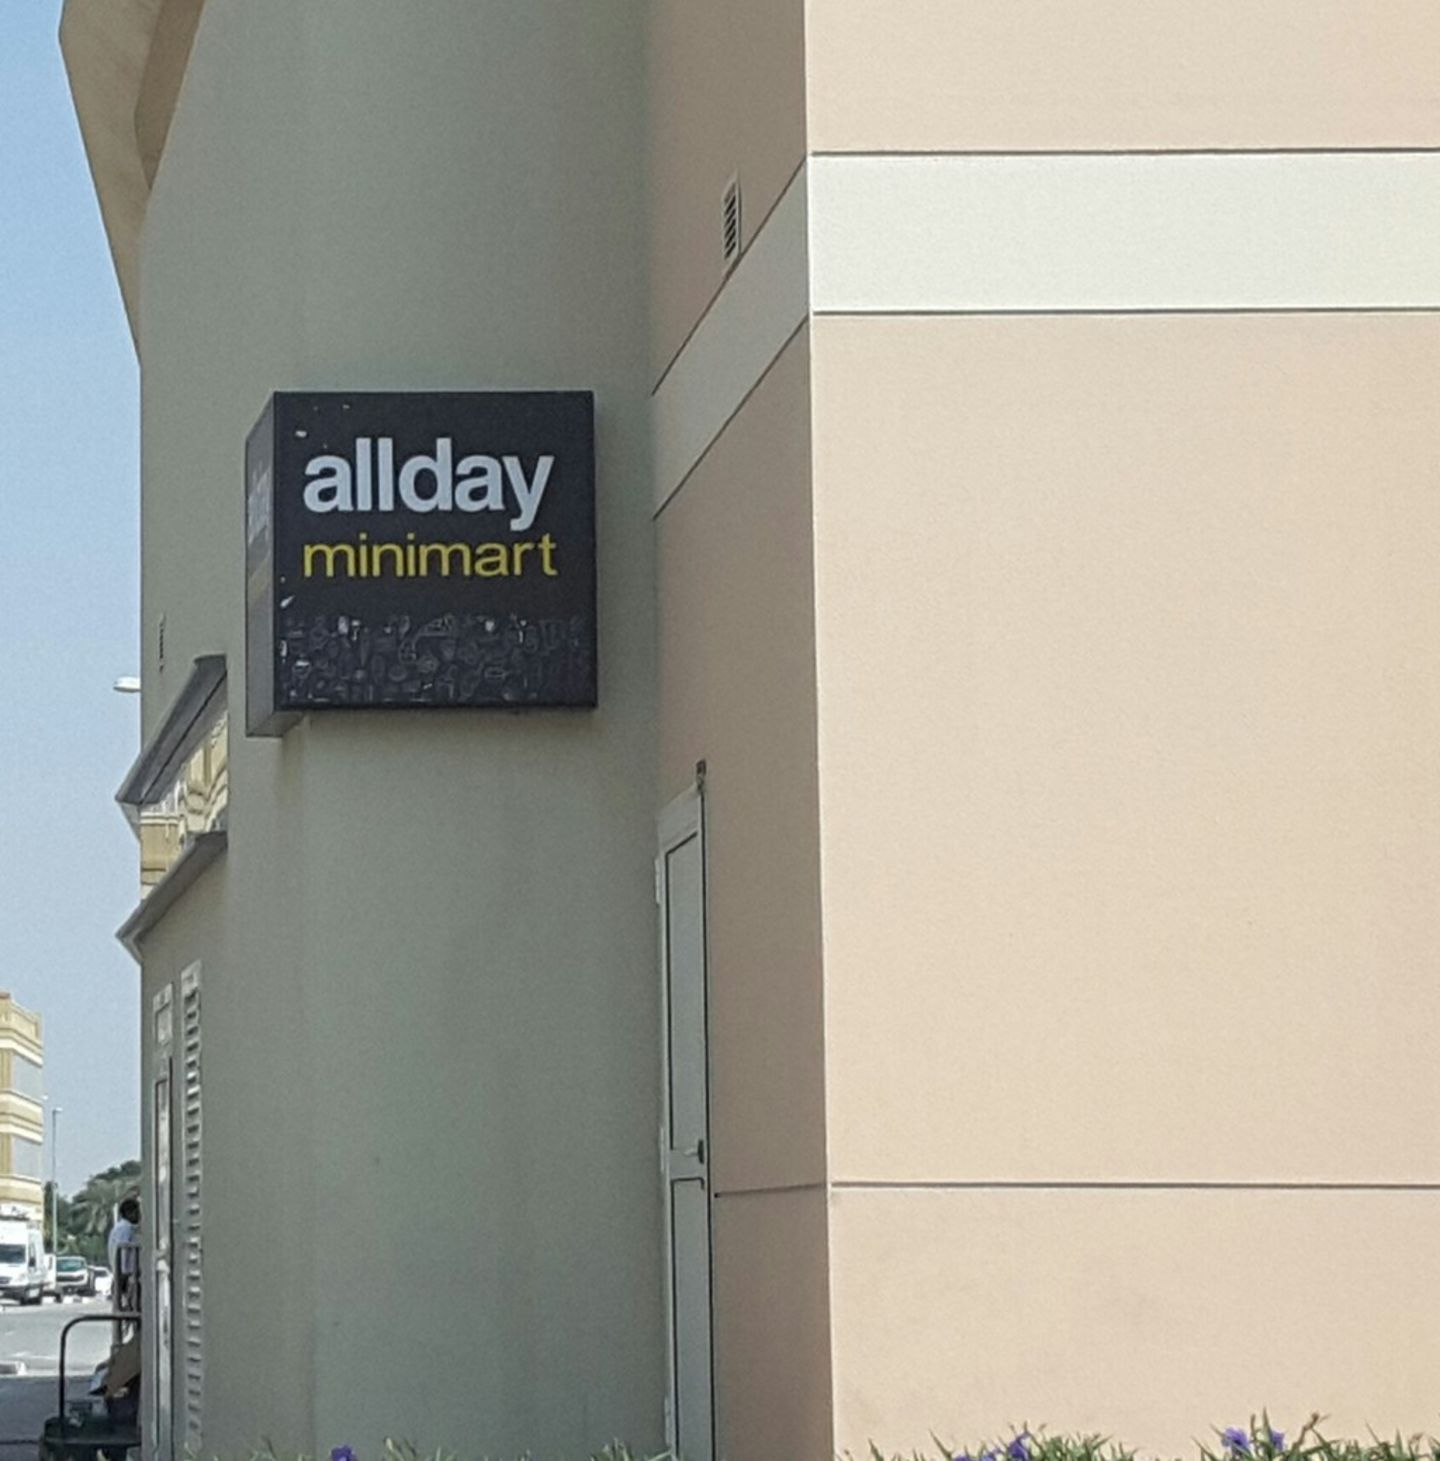 HiDubai-business-allday-minimart-dubai-studio-city-food-beverage-supermarkets-hypermarkets-grocery-stores-dubai-studio-city-al-hebiah-2-dubai